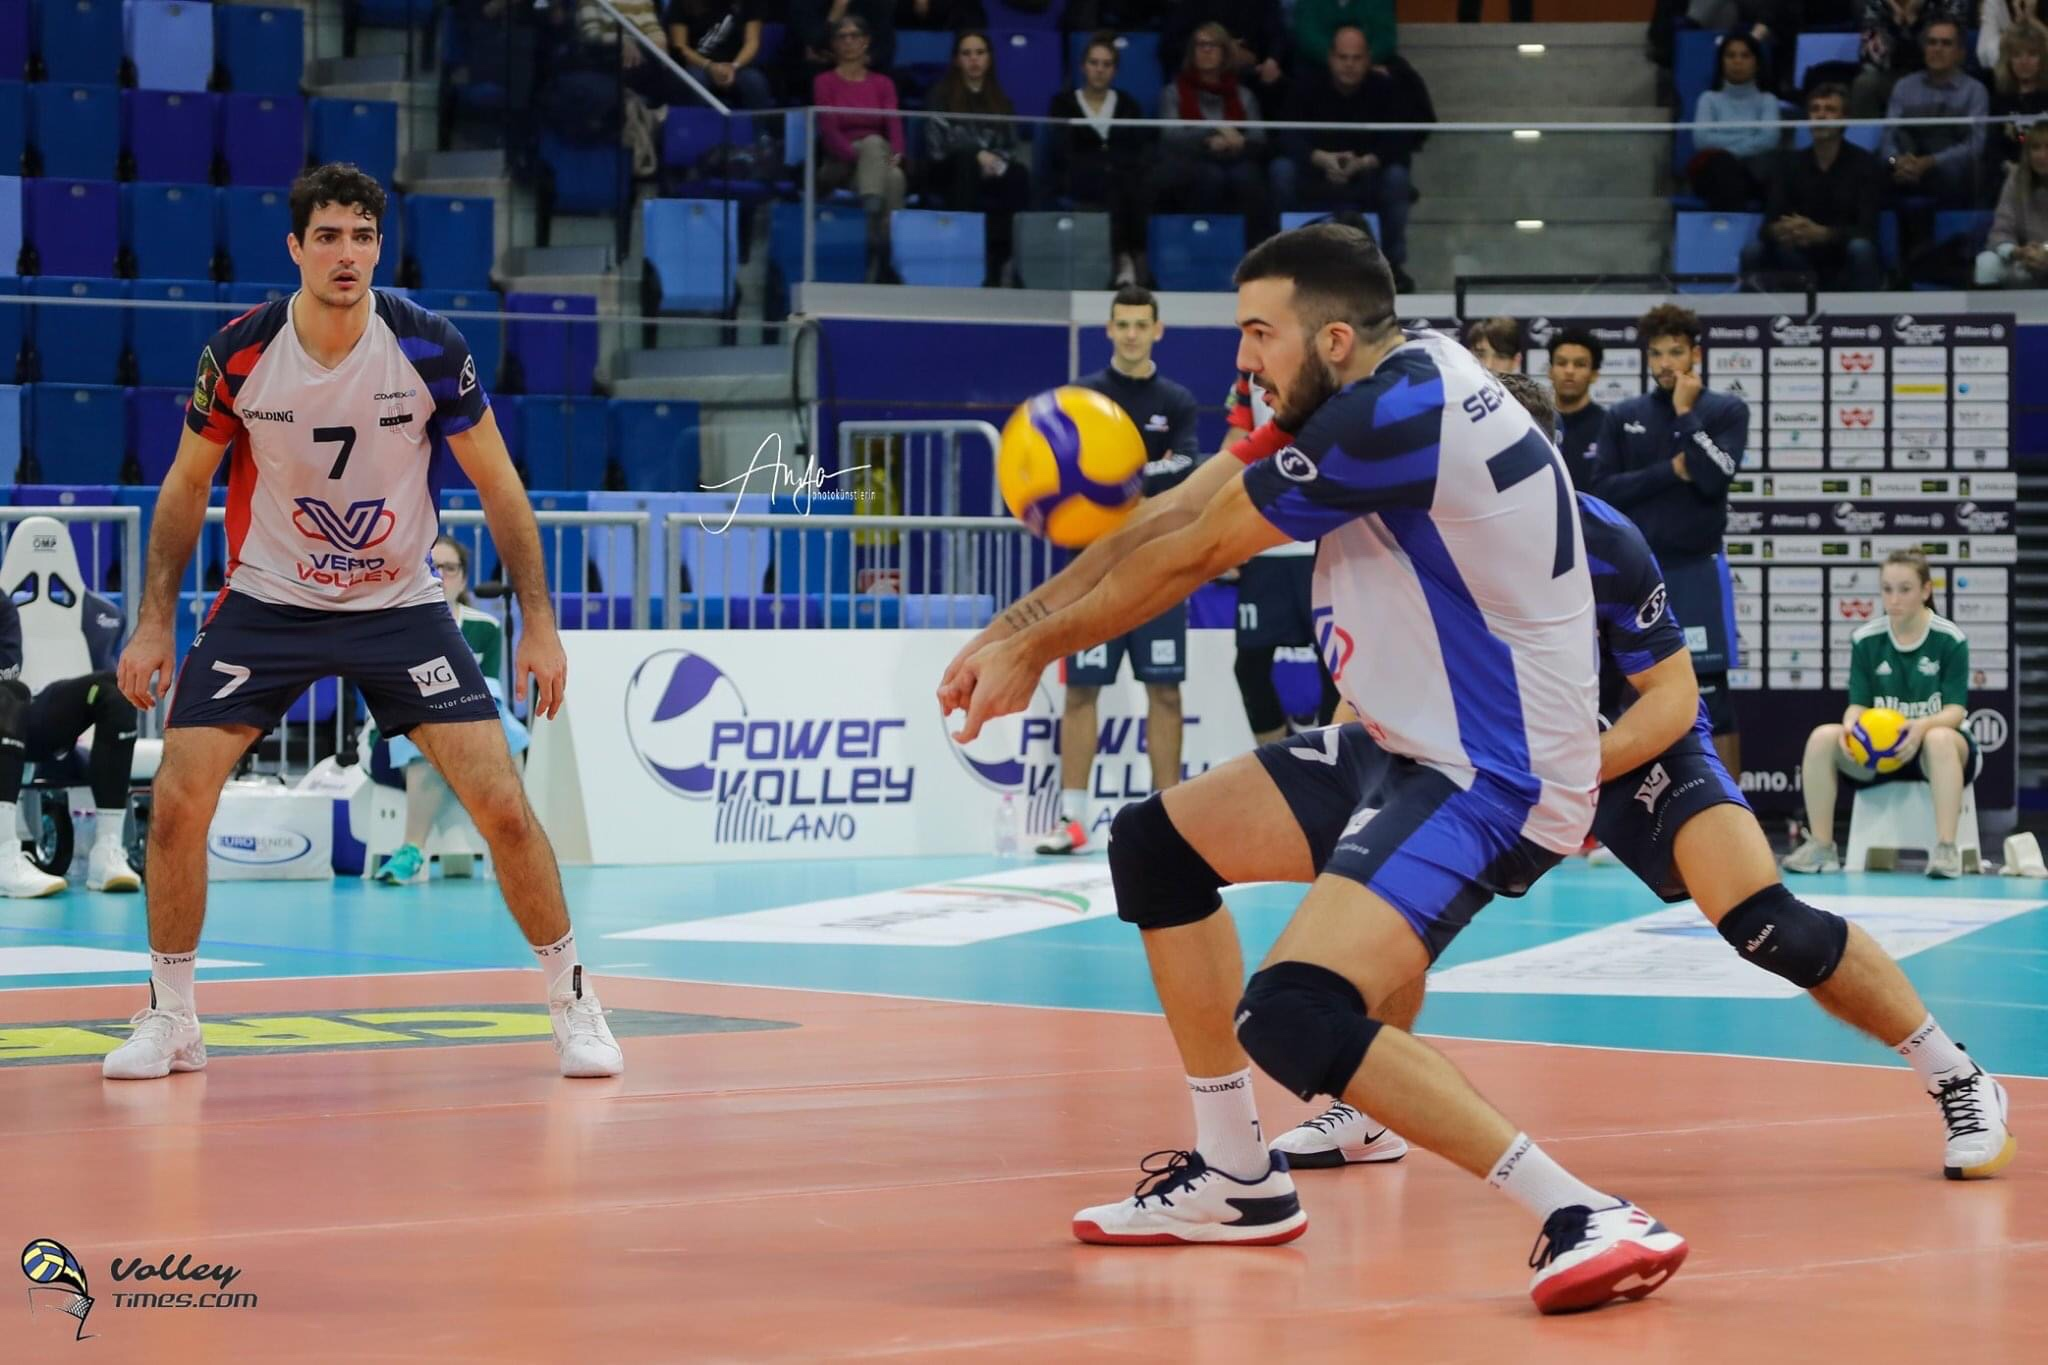 Italy: Marko Sedlacek 11th player that has been confirmed by Vero Volley Monza